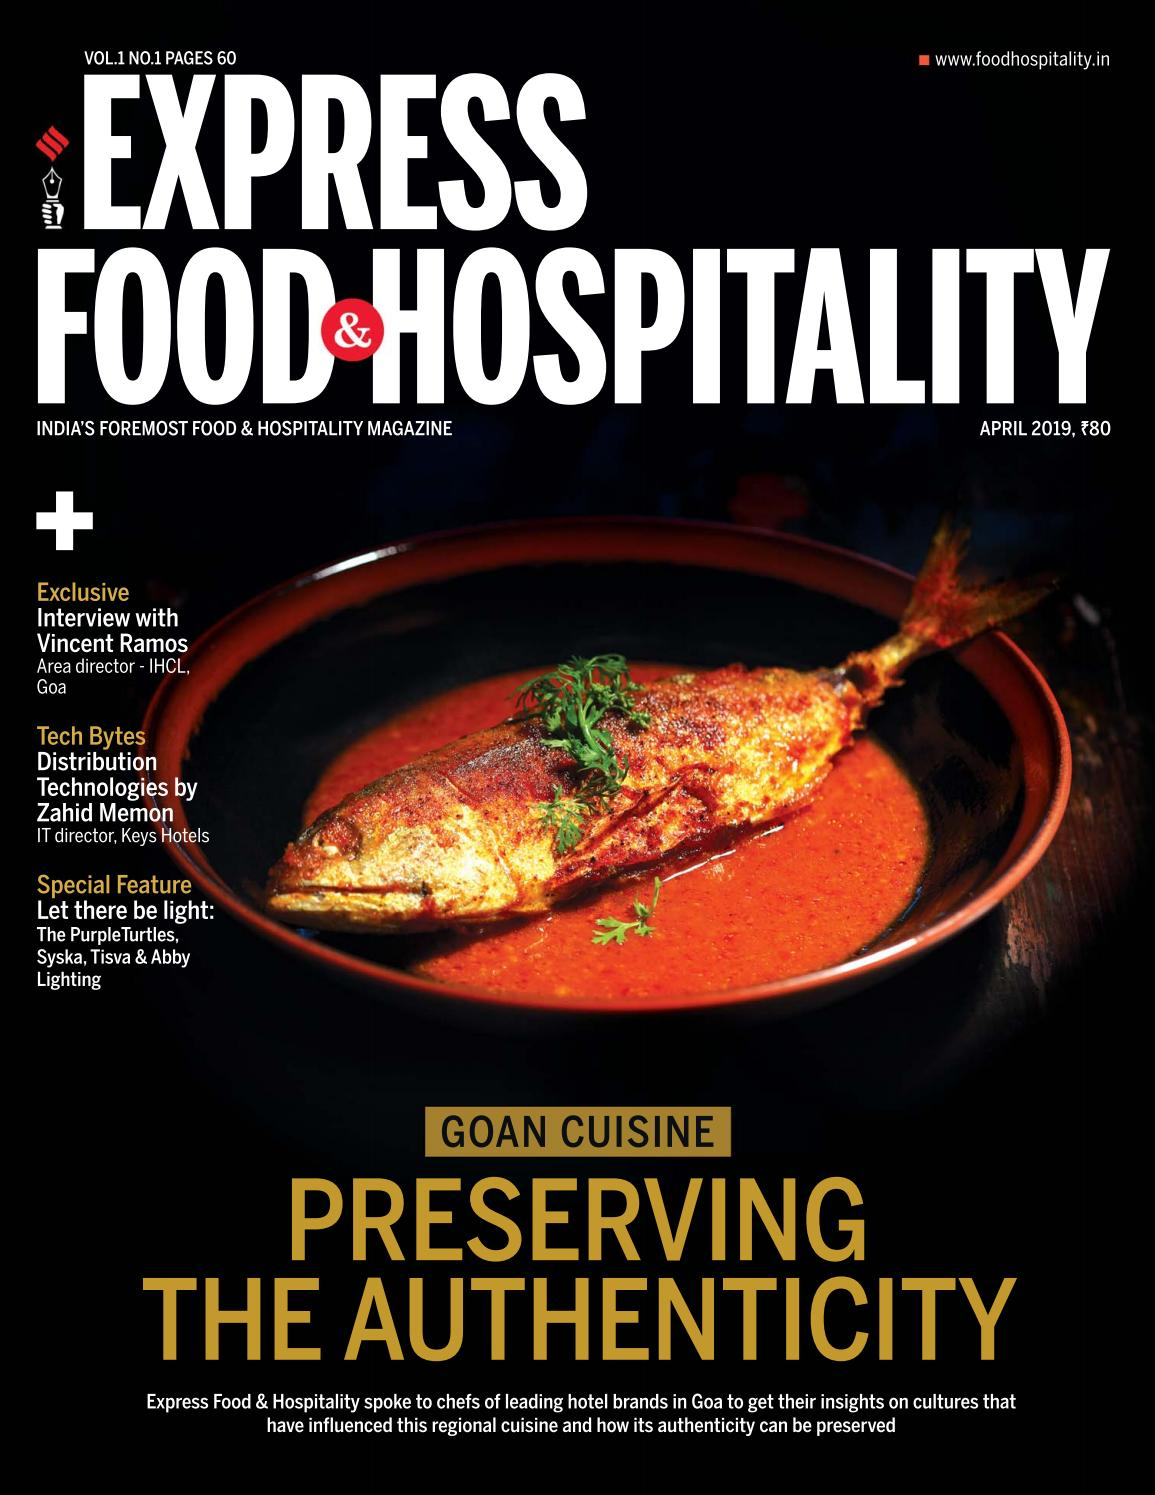 Express Food and Hospitality (Vol 1 No 1) April, 2019 by Indian